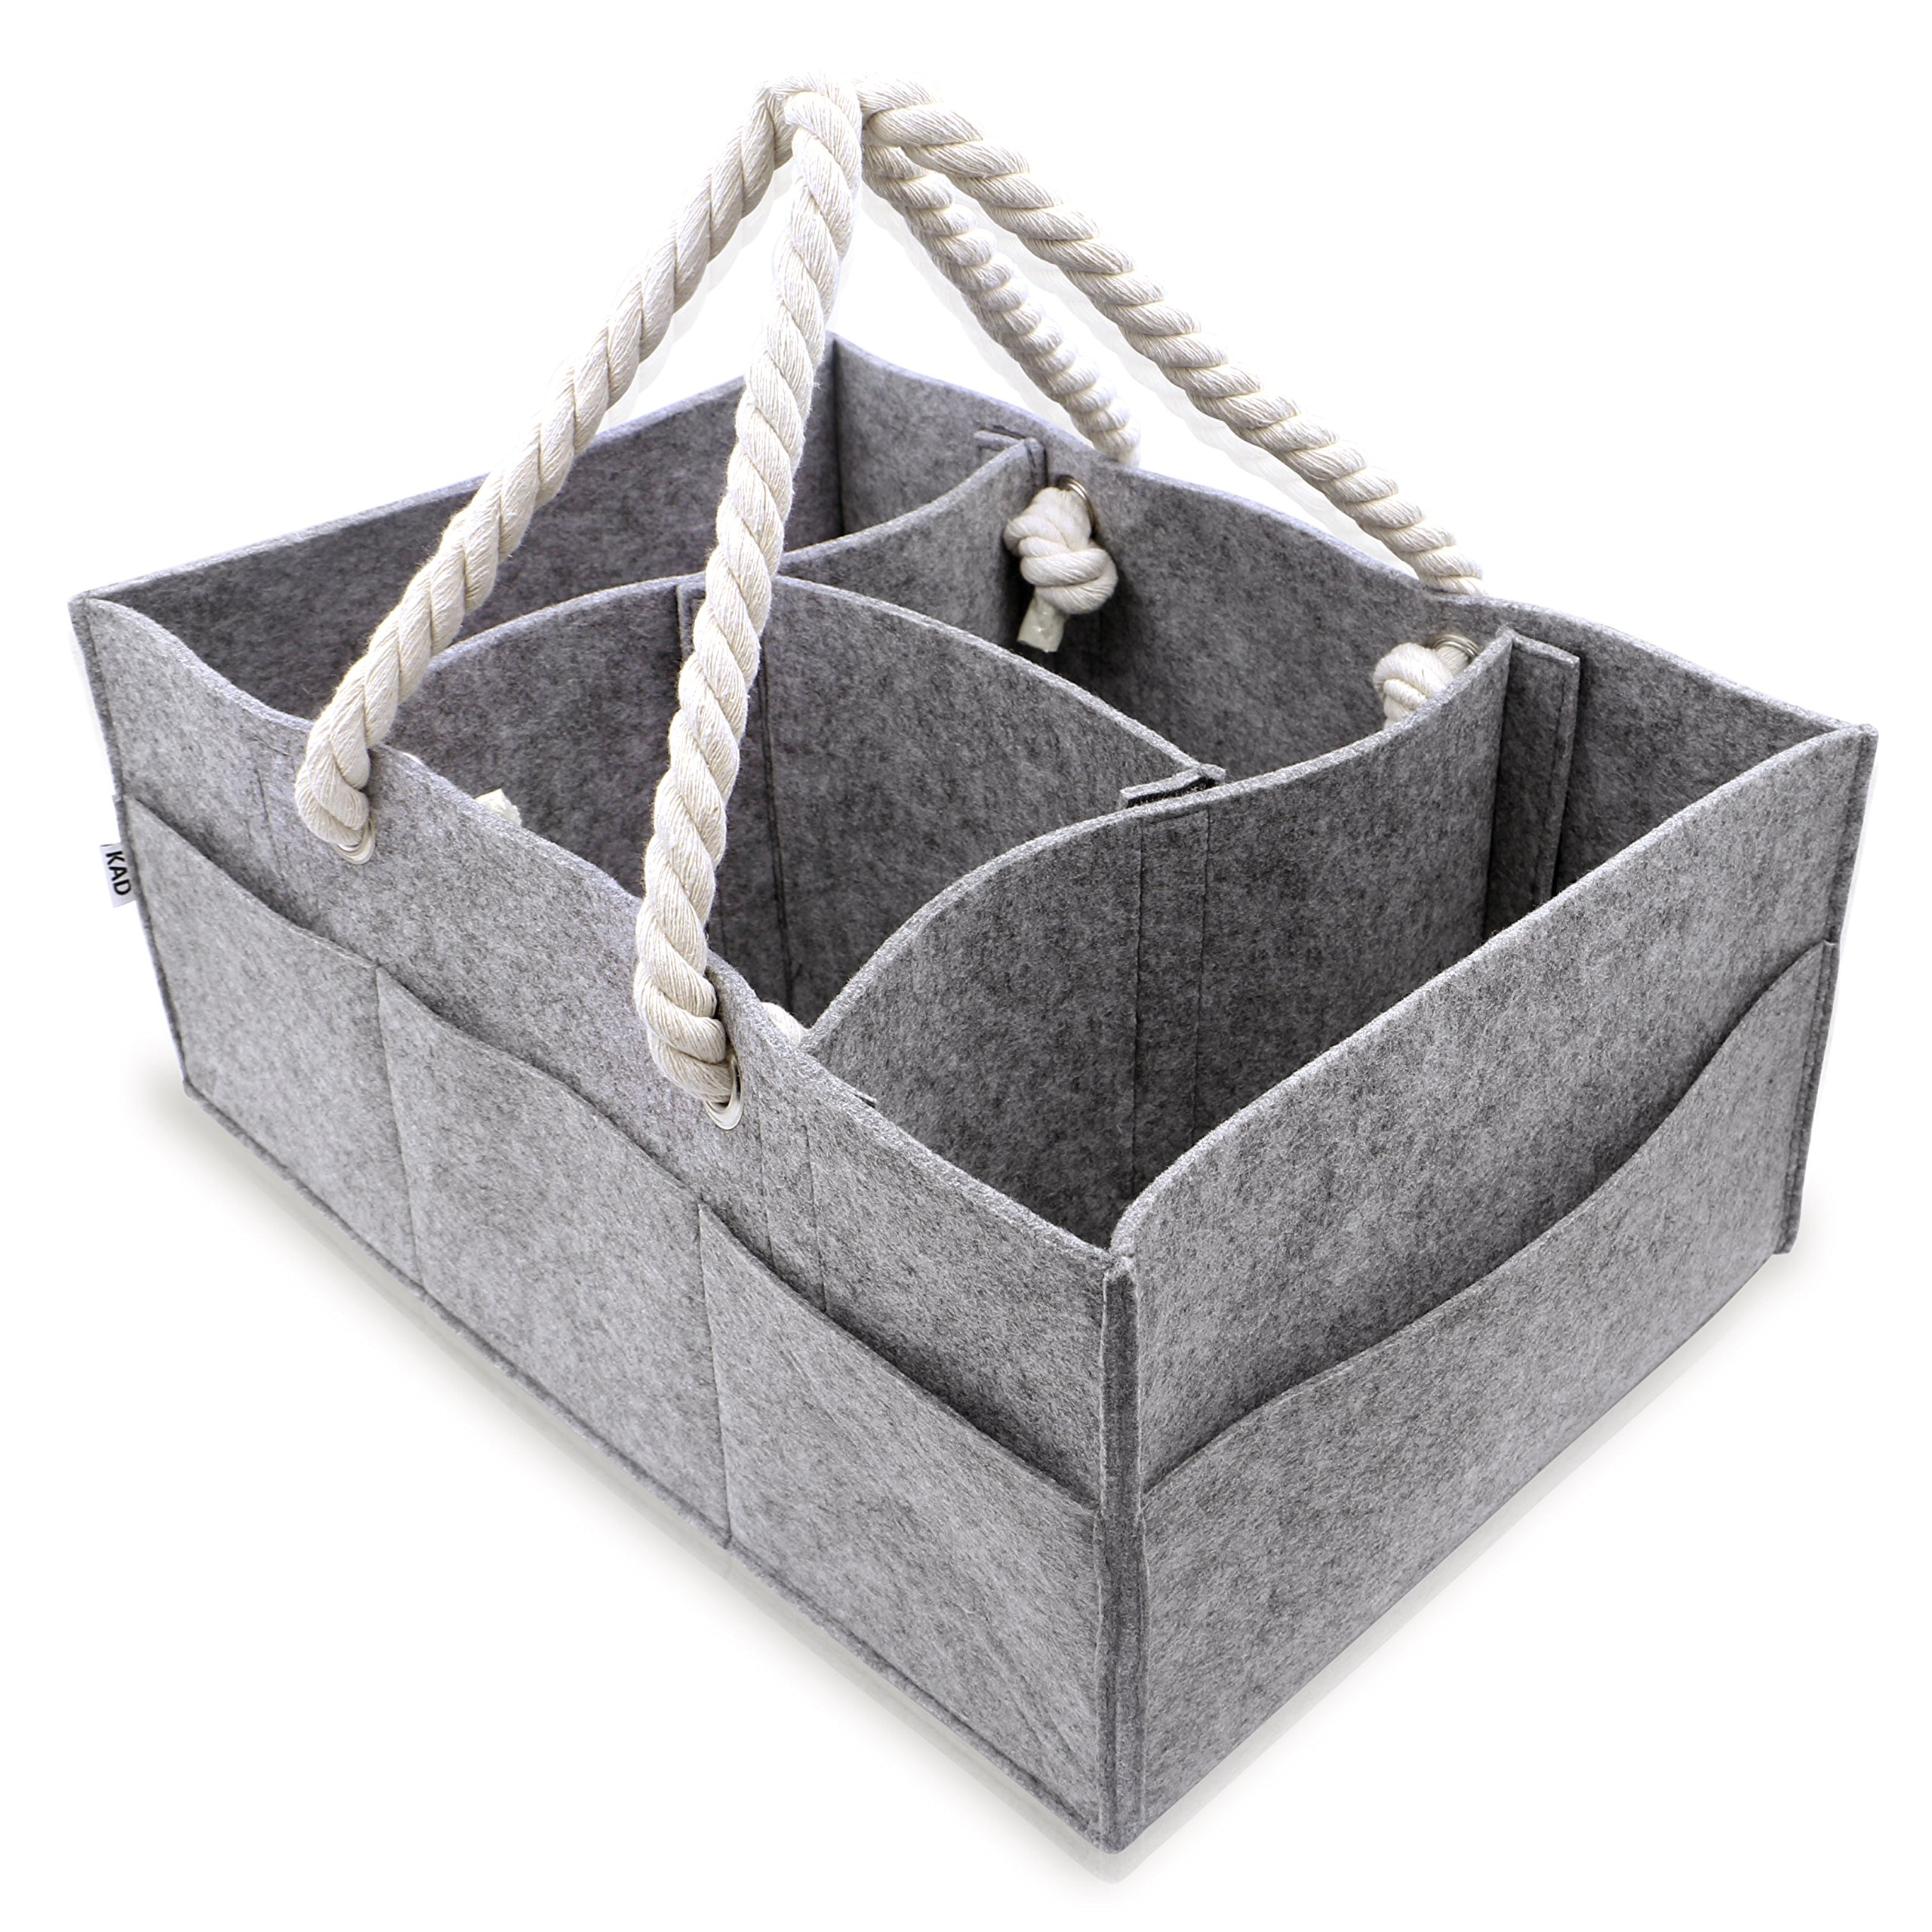 Baby Diaper Caddy Foldable Portable Nursery Organizer Storage Bin Felt Basket Tote Bag With Handle for Diapers Changing Table Baby Wipes Home Organization